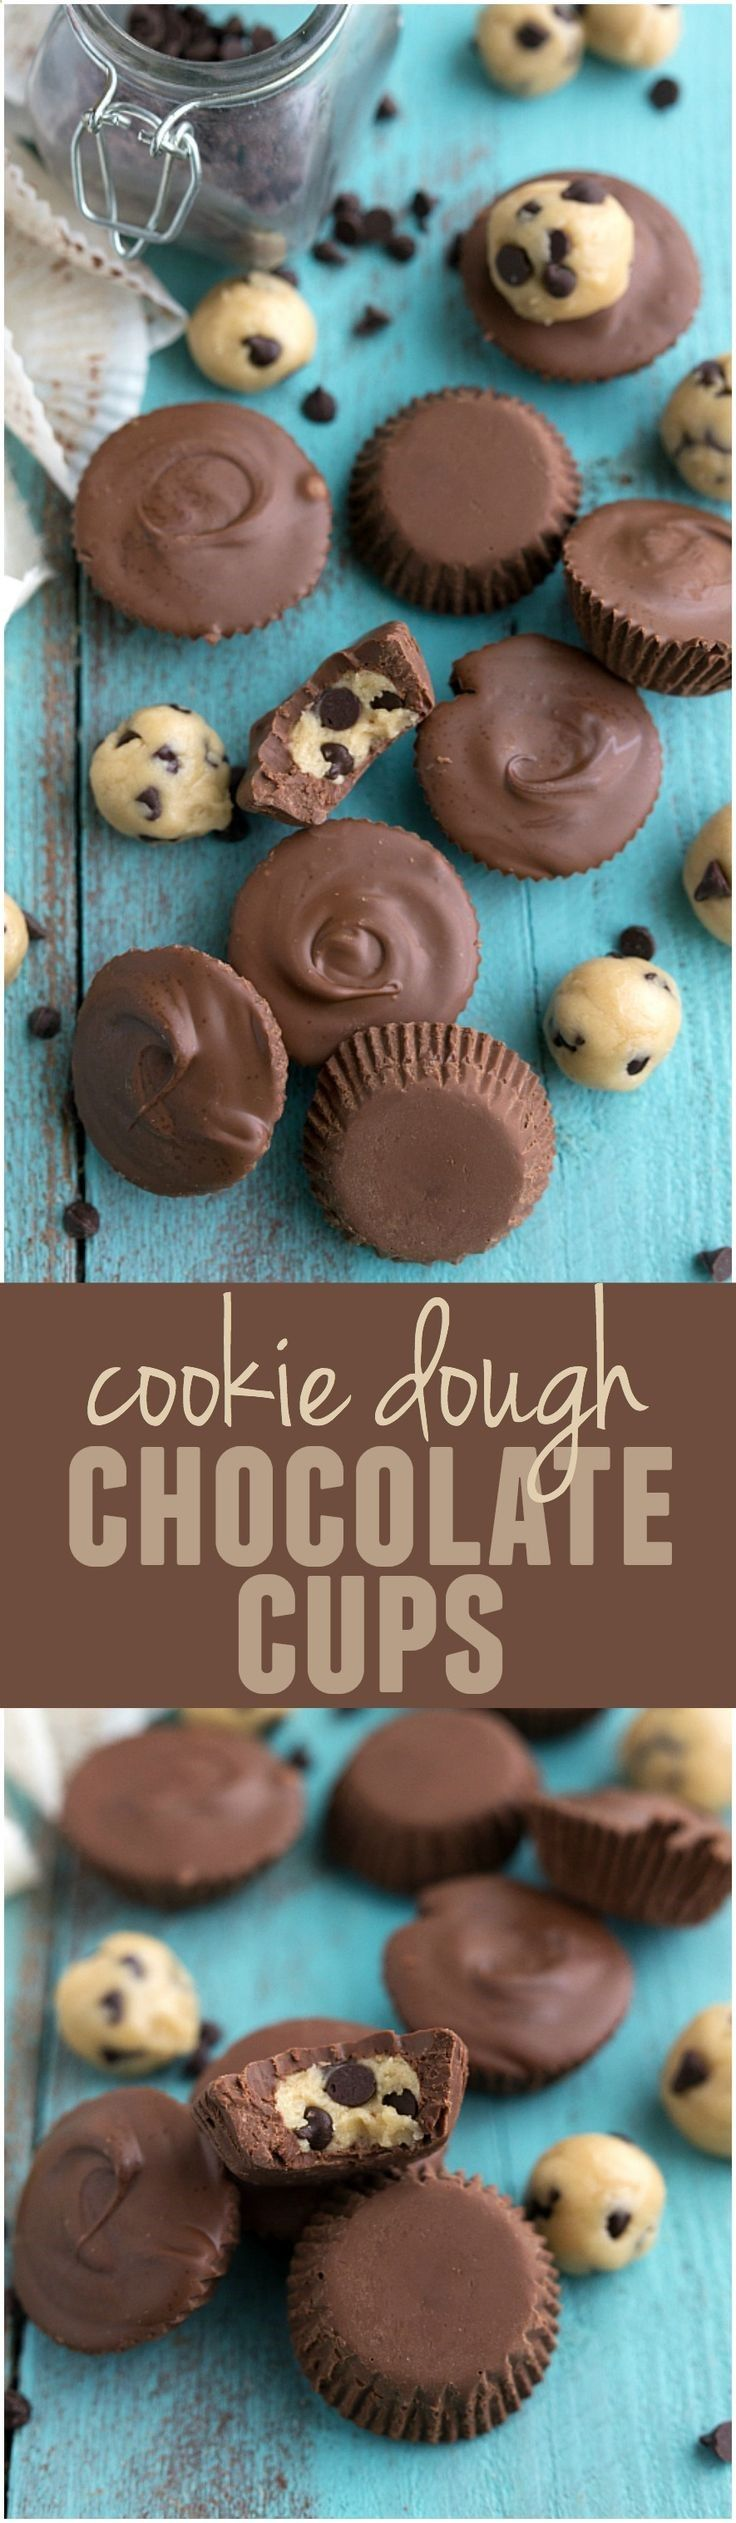 Super yummy treat I want to try out!